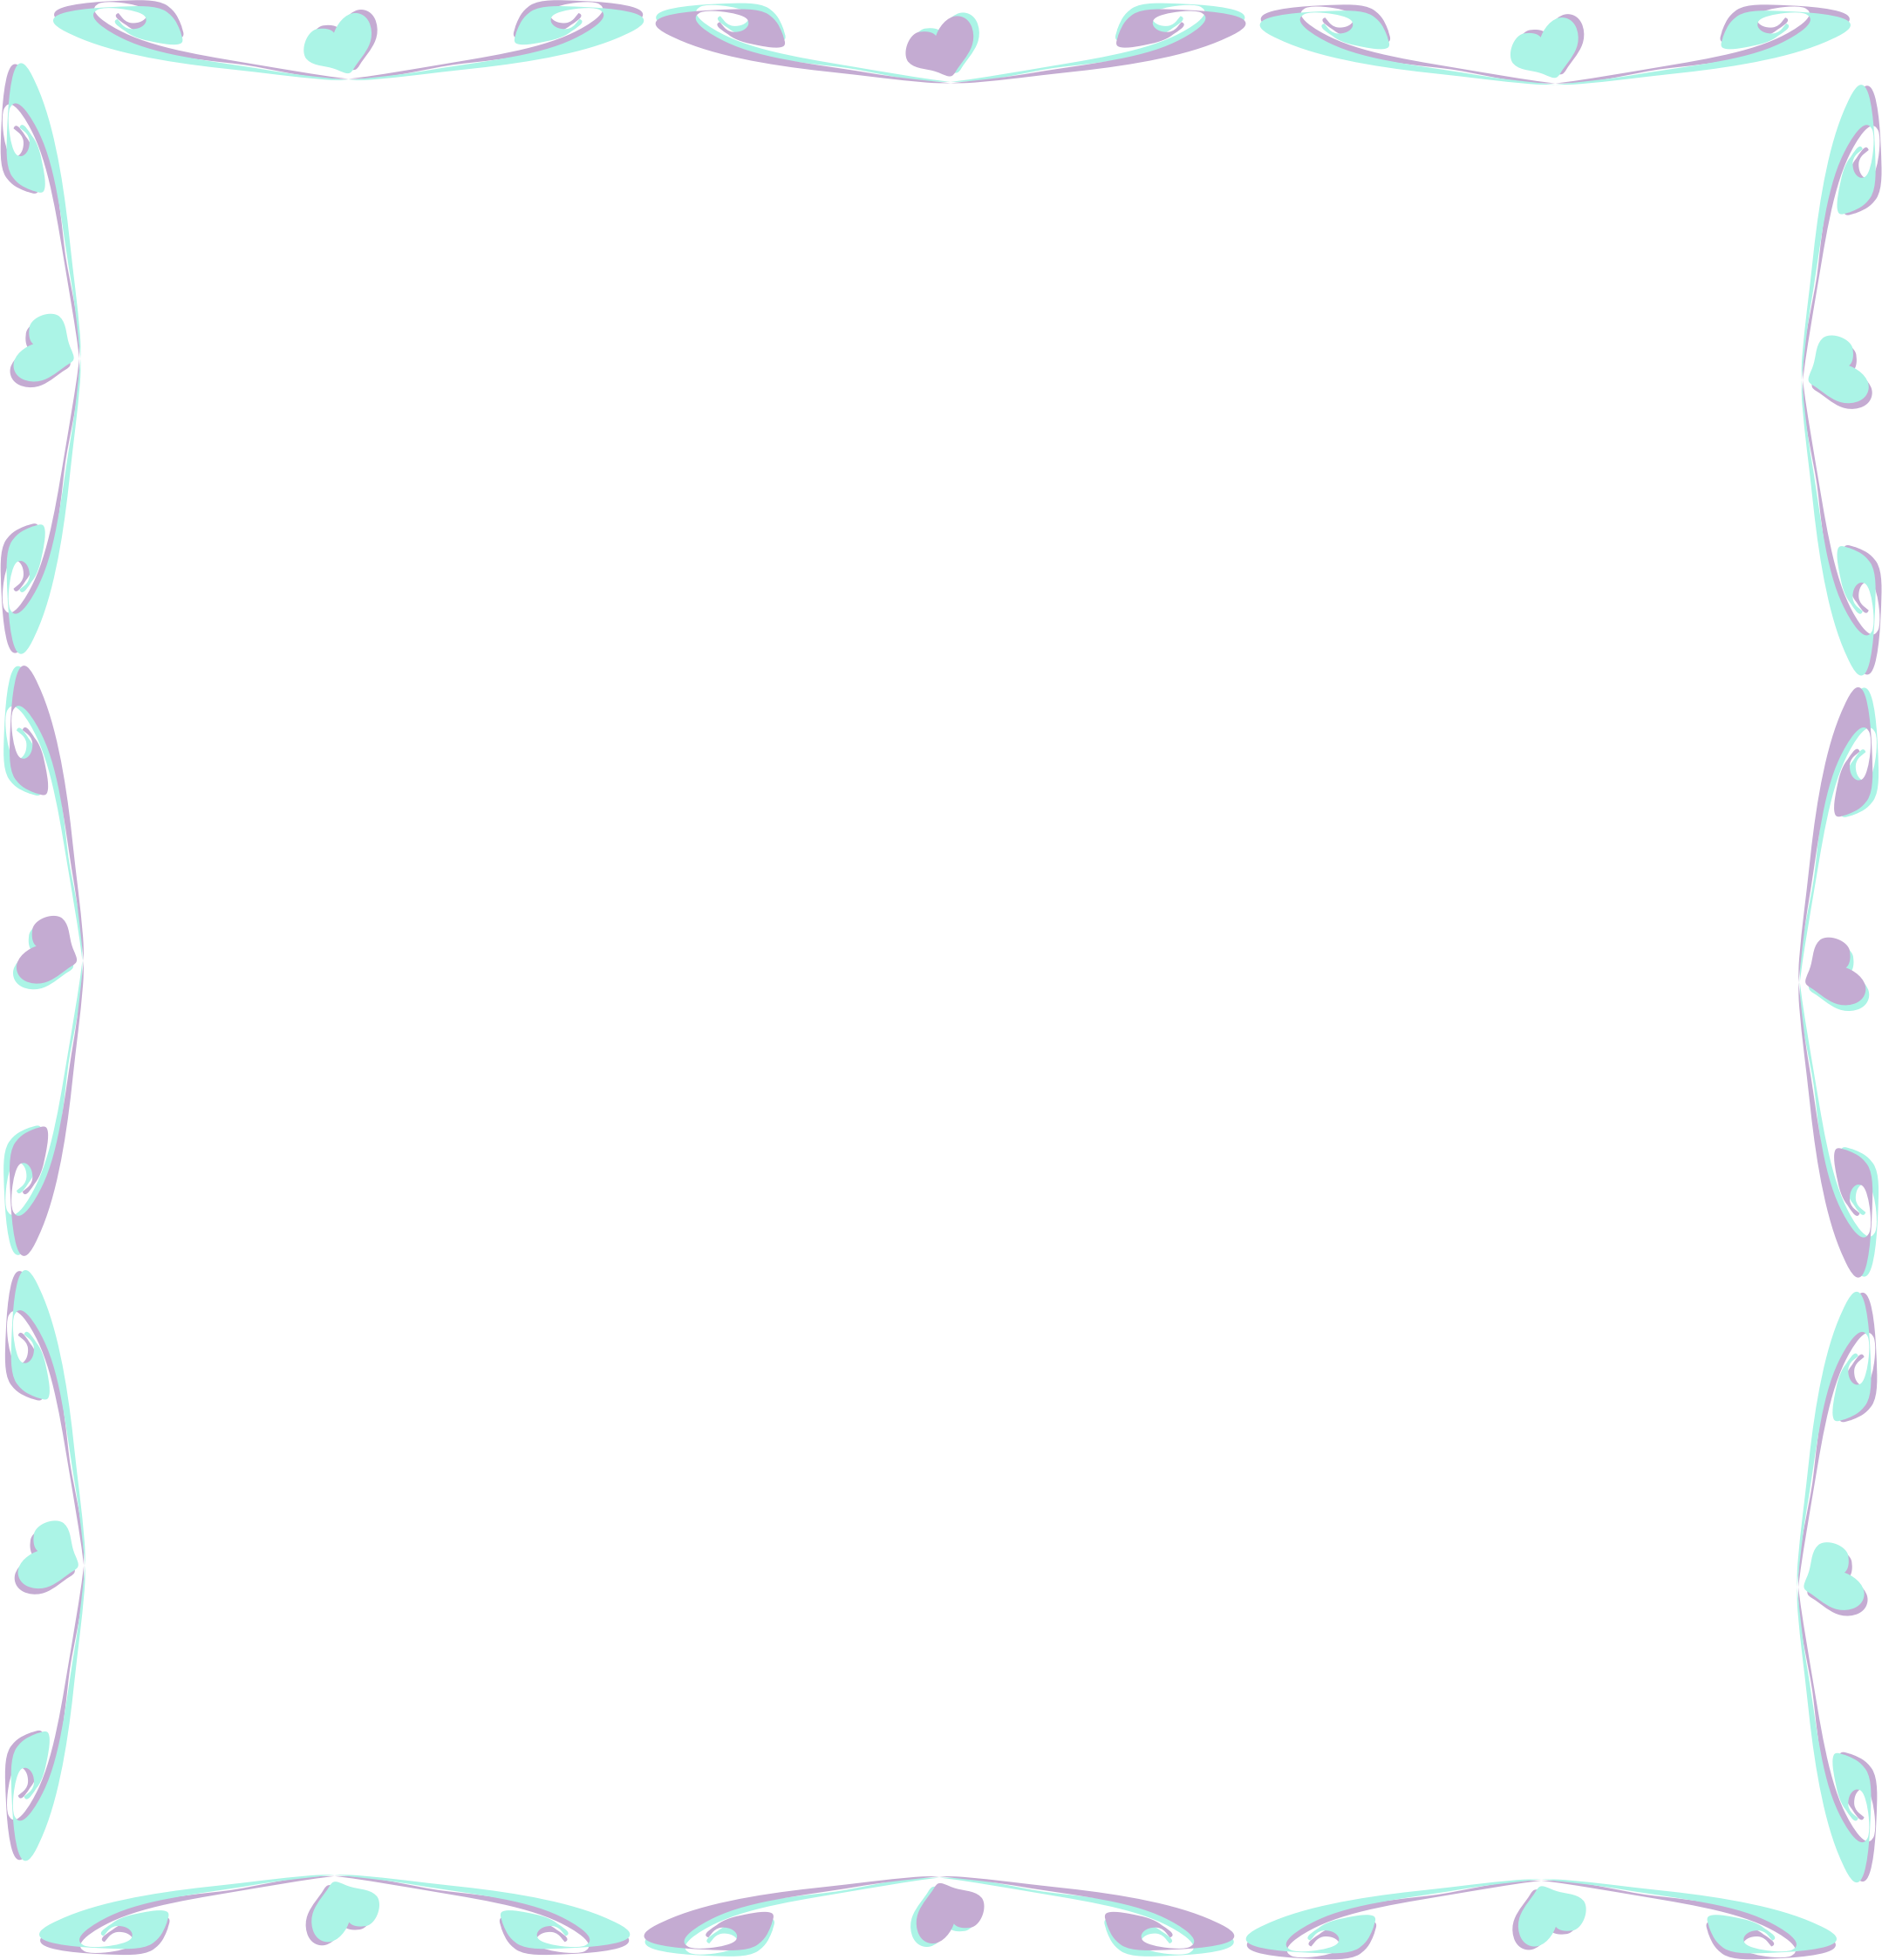 Divider icons png free. Frame clipart colorful